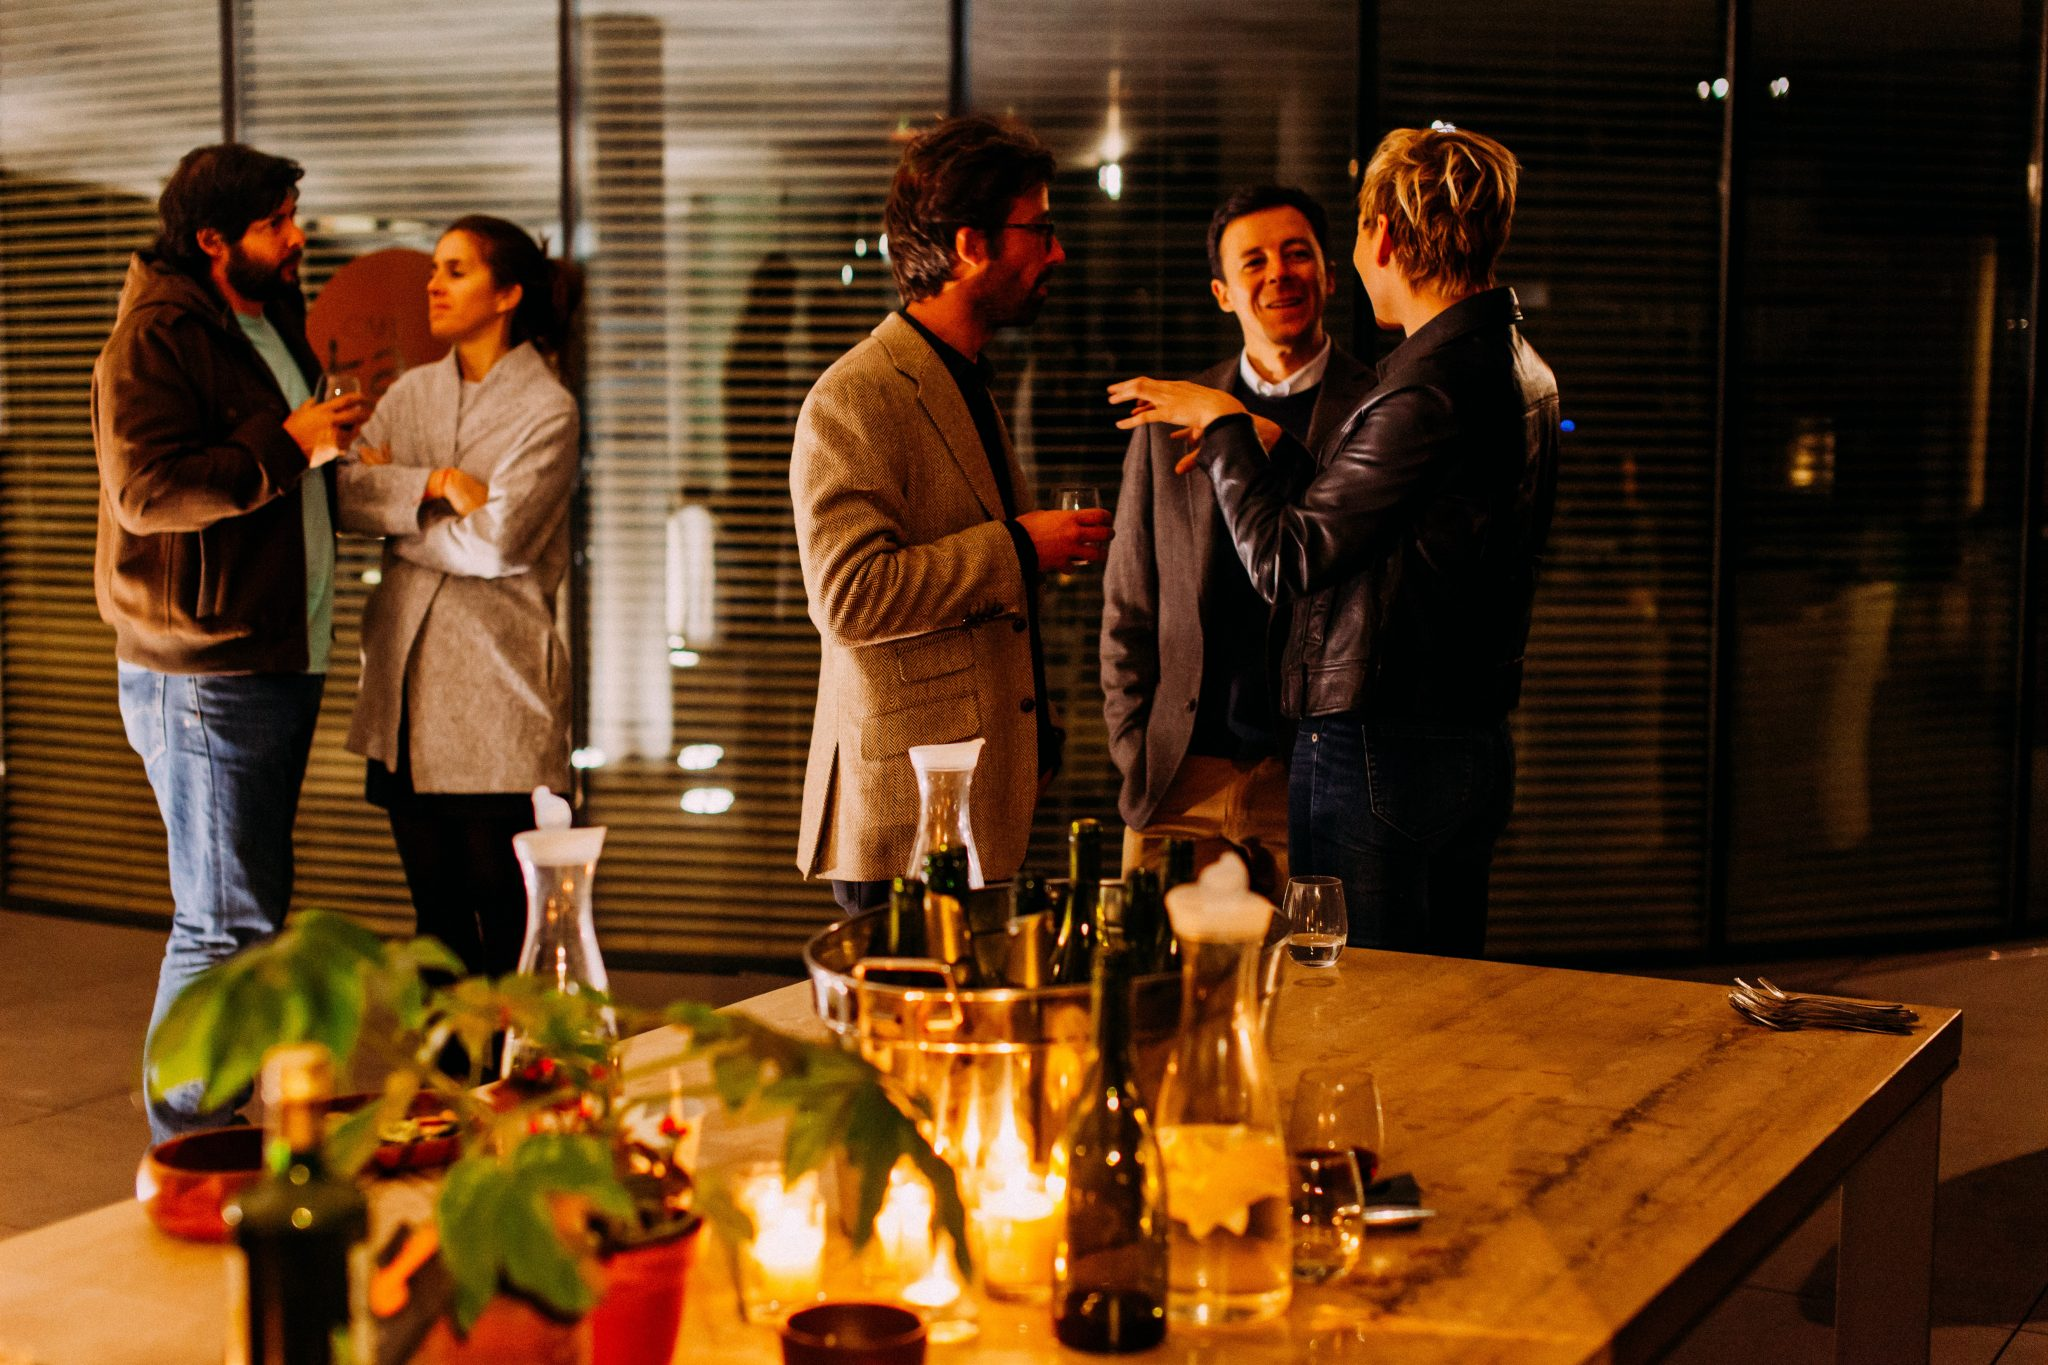 Business networking: How to talk to strangers at a business event?